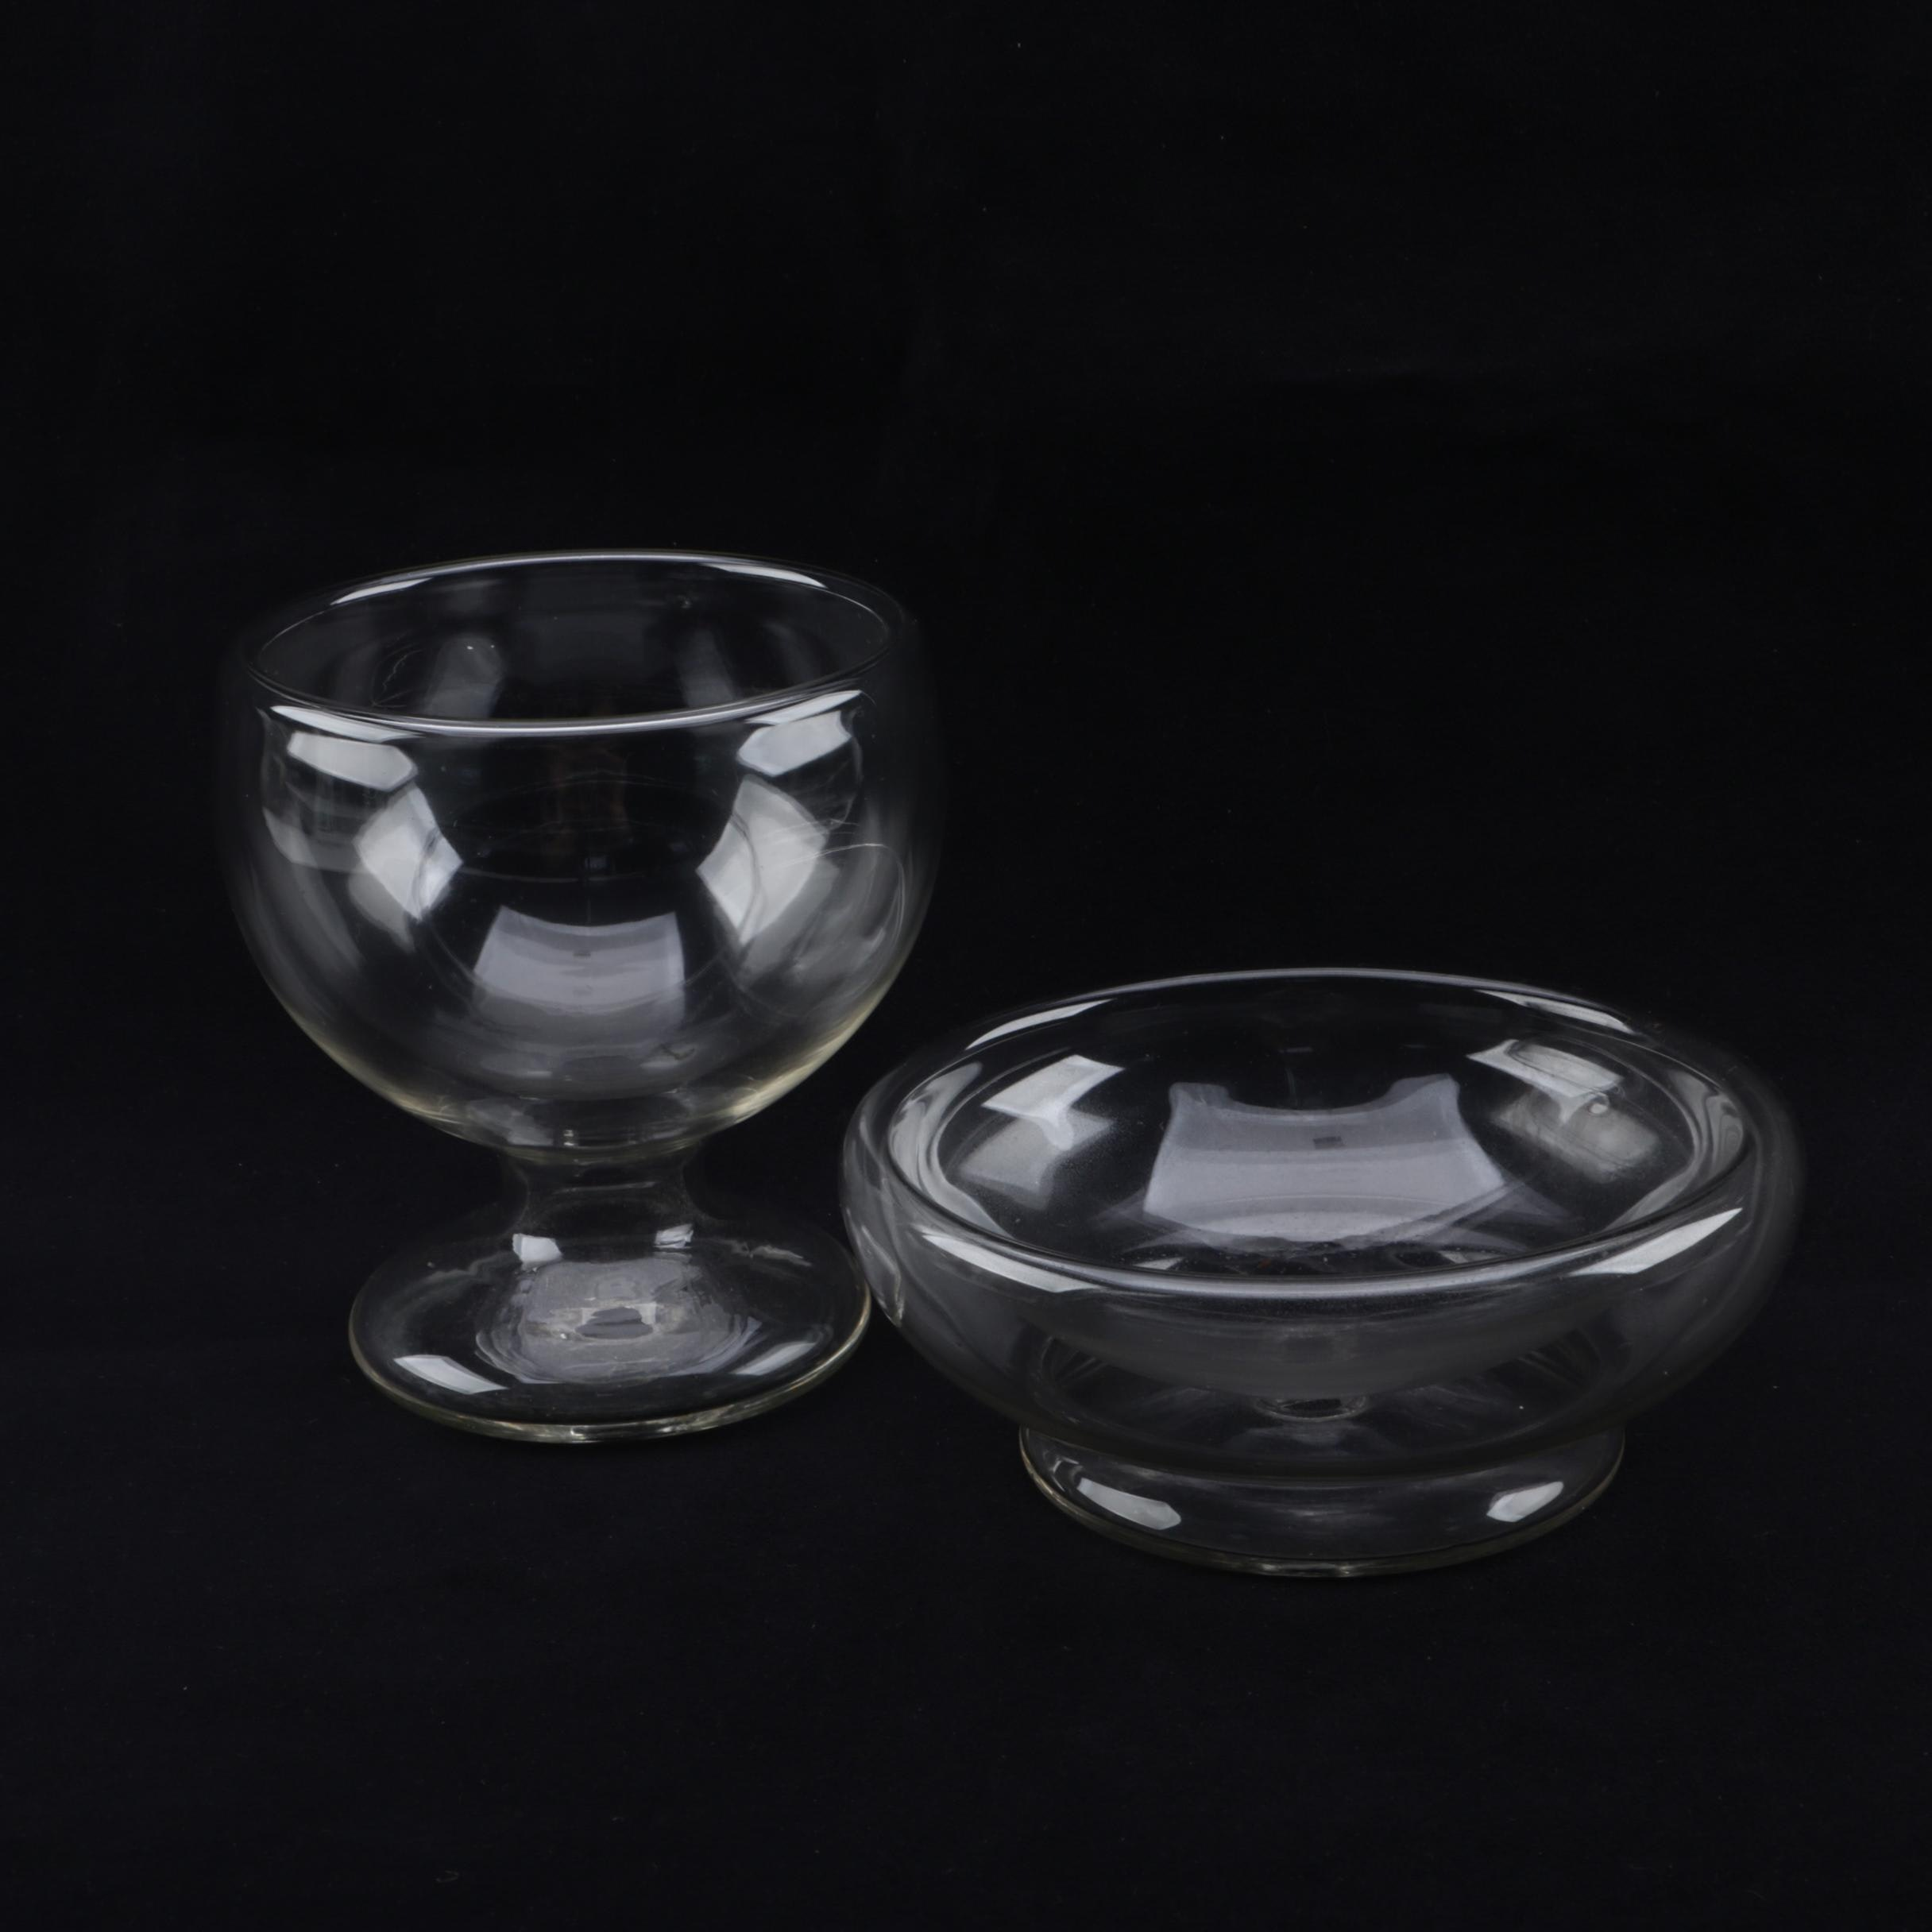 Double-Walled Blown Glass Footed Bowls